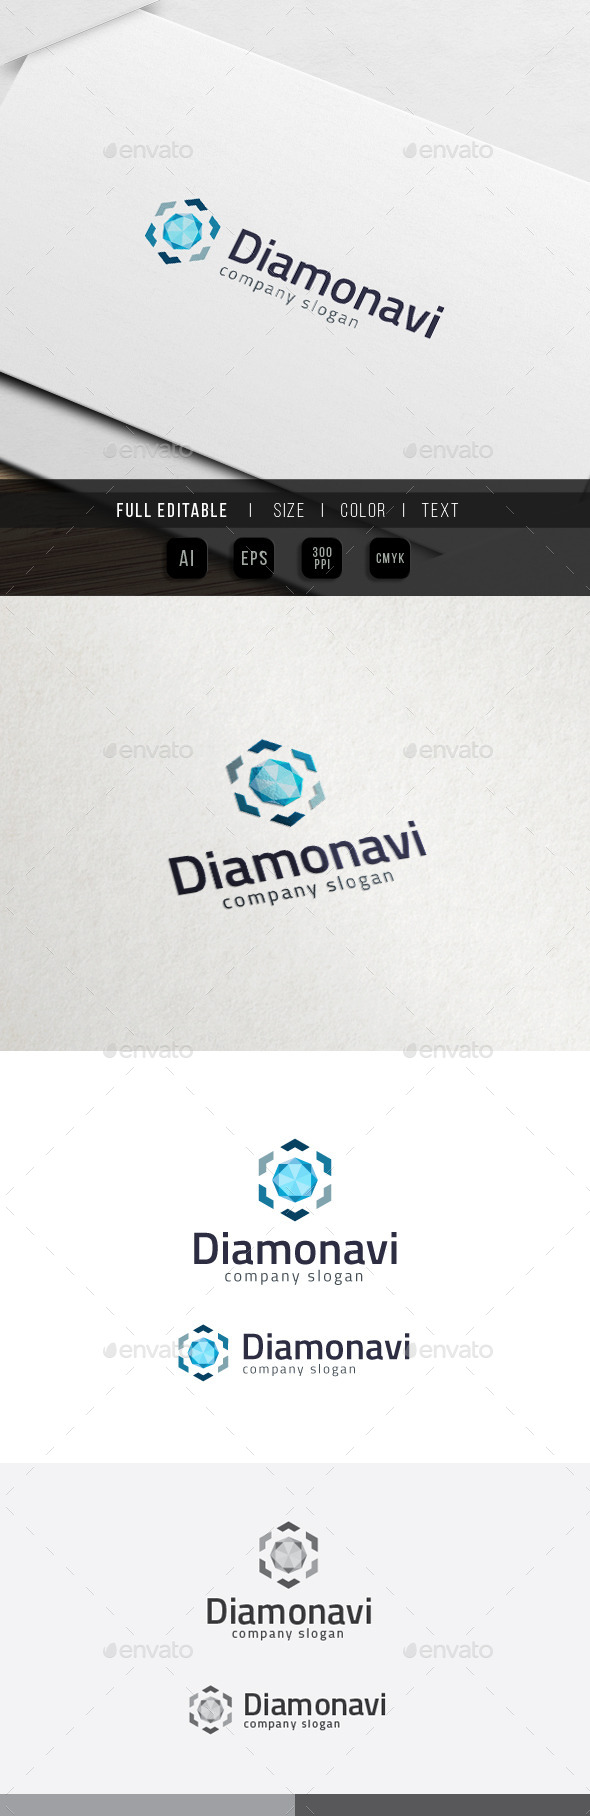 GraphicRiver Diamond Navigation Jewel Store Logo 11841032